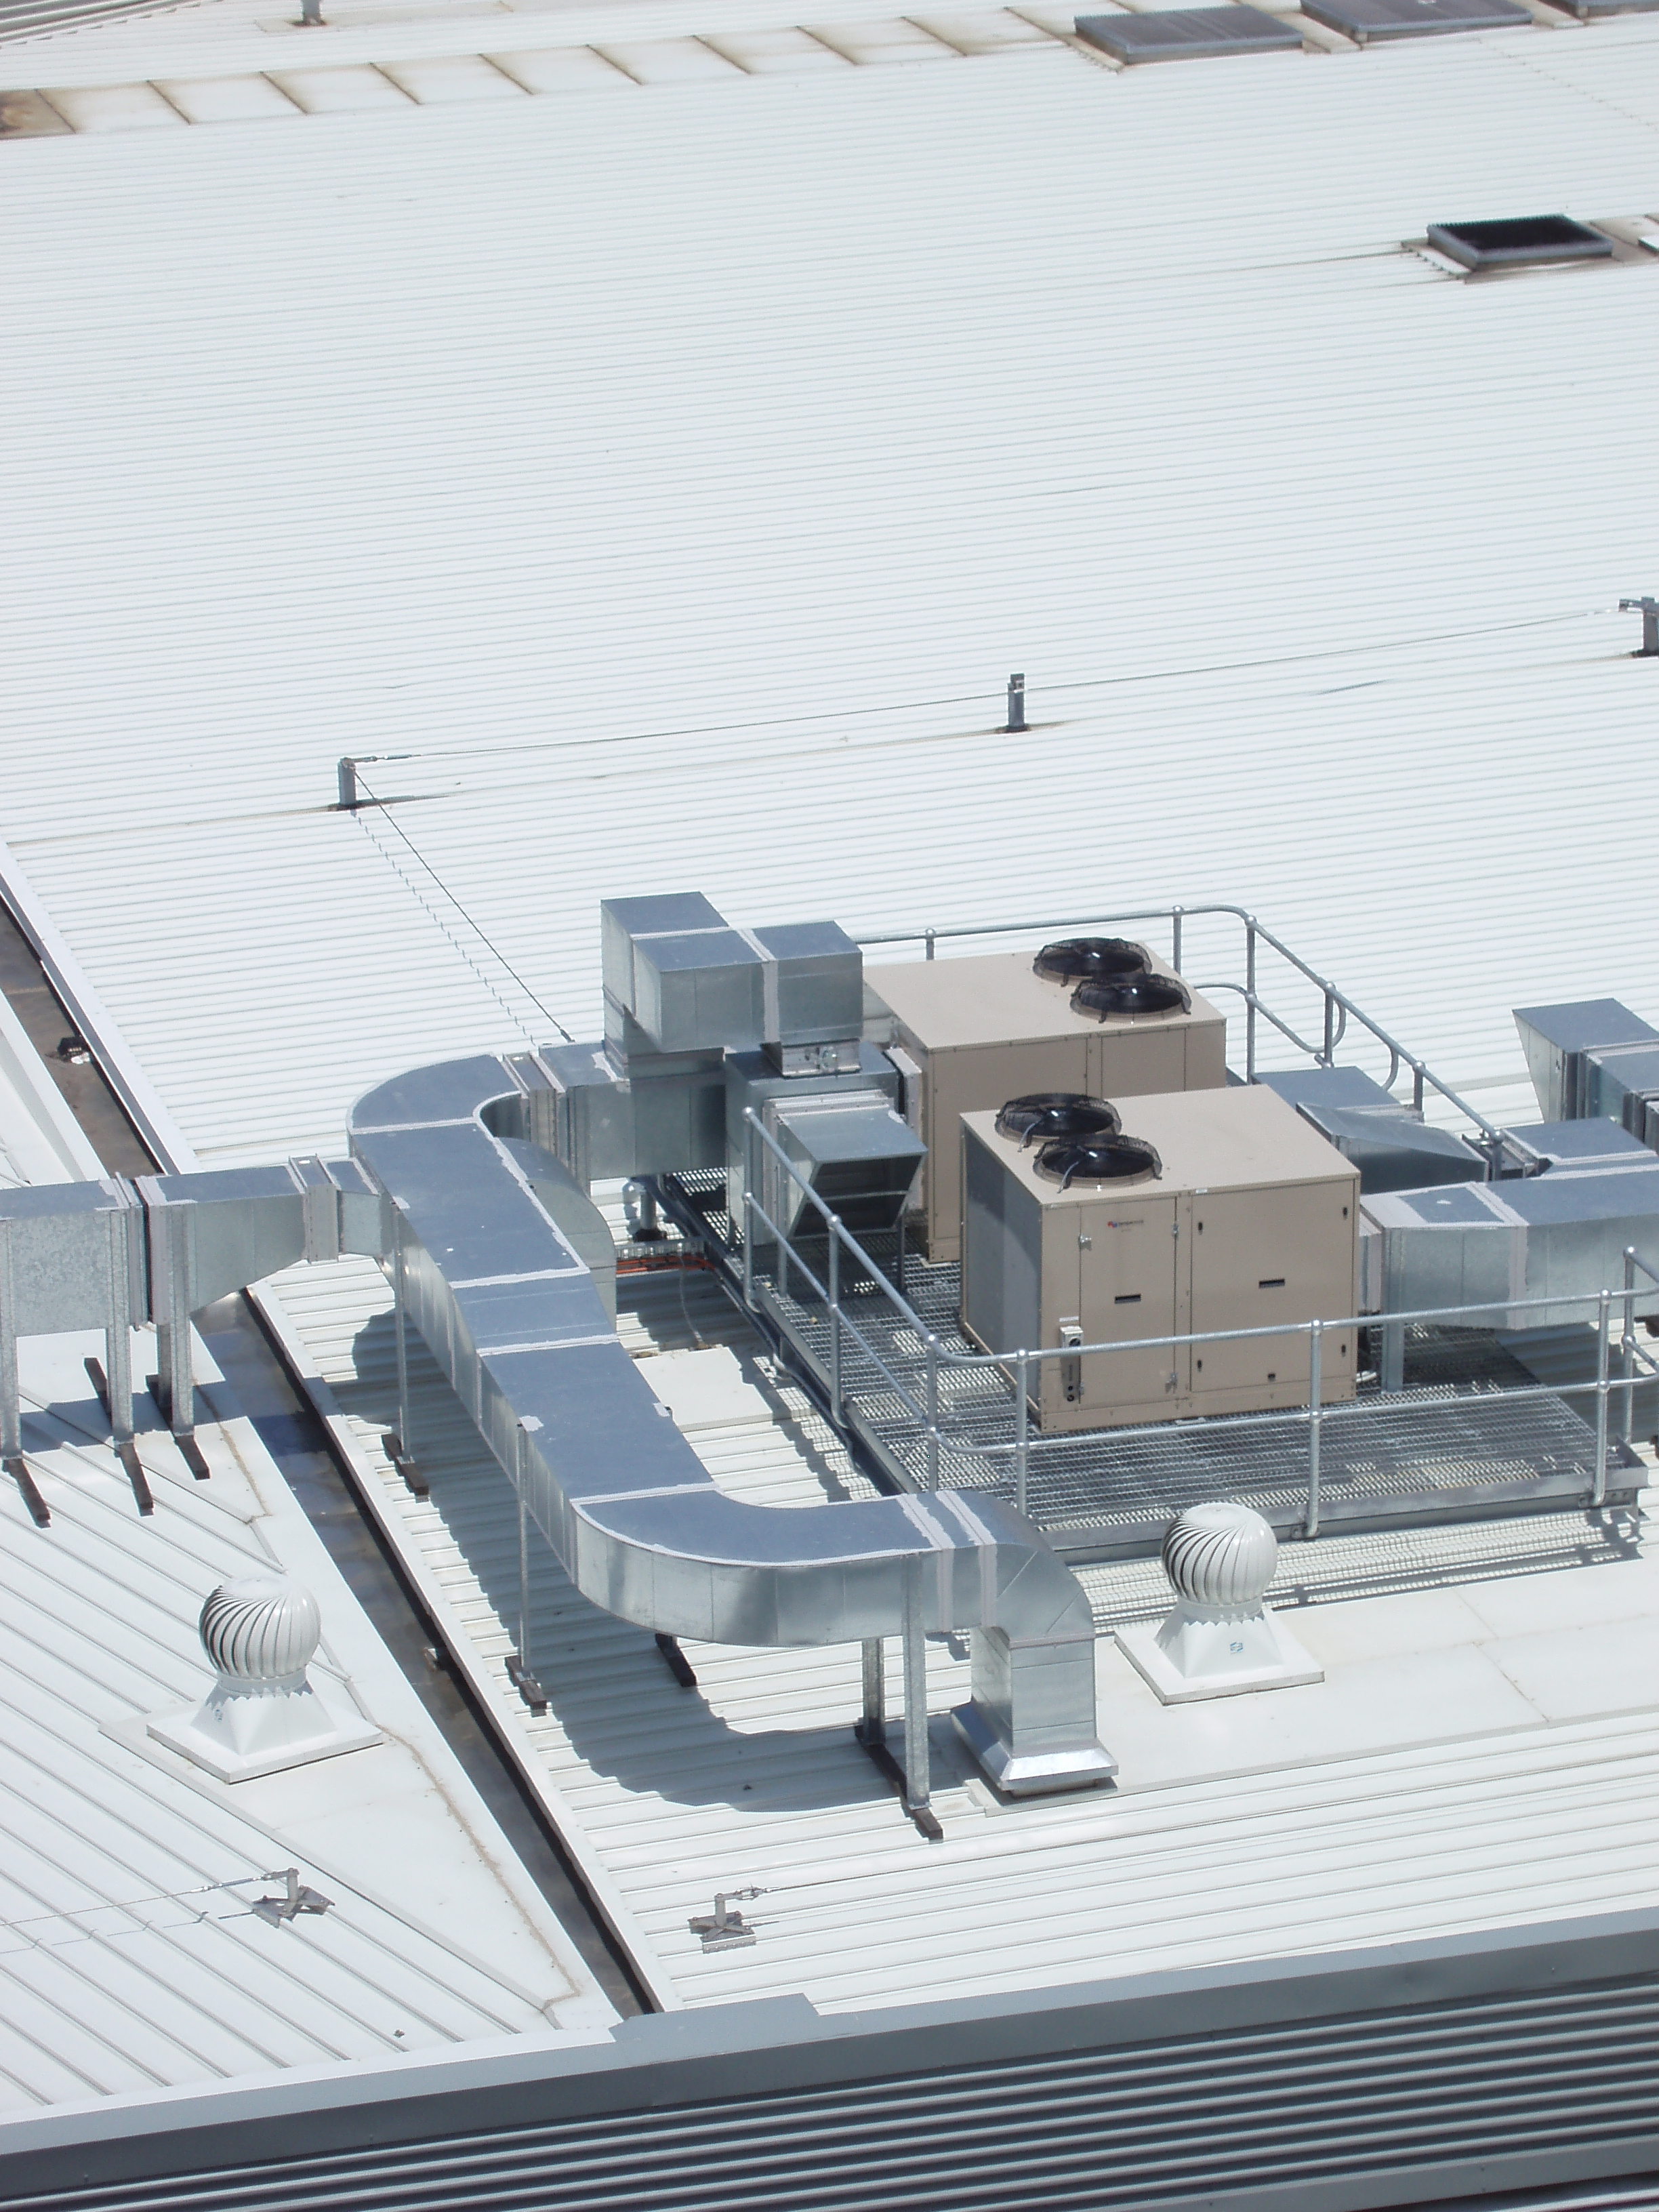 rooftop air conditioning machinery